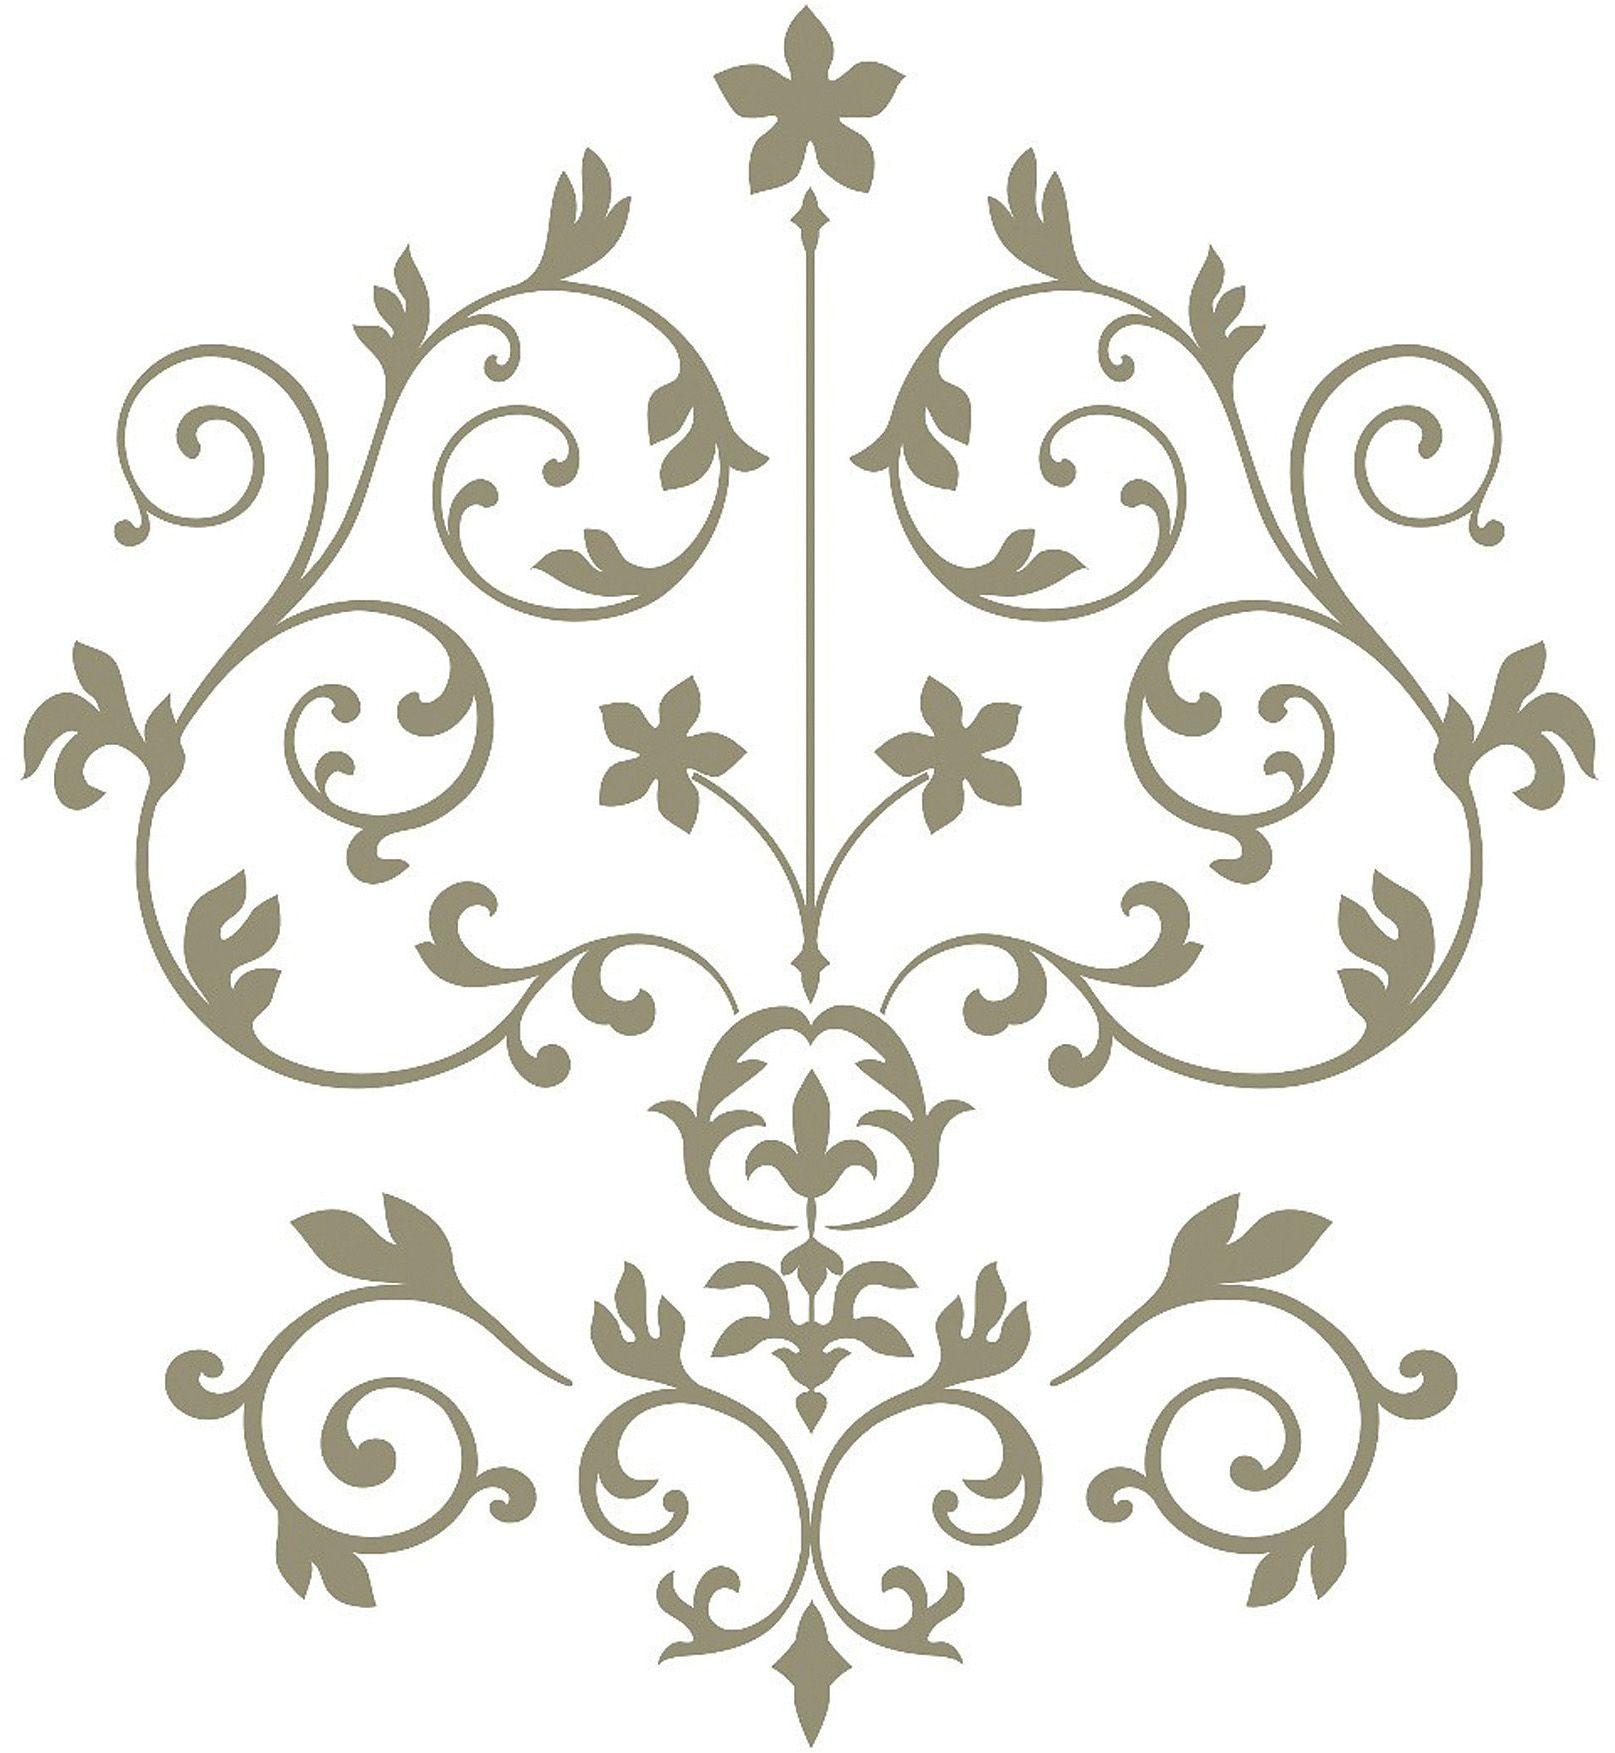 Nouveau Damask Wall Art Sticker Kit Intended For Art Nouveau Wall Decals (Image 15 of 20)